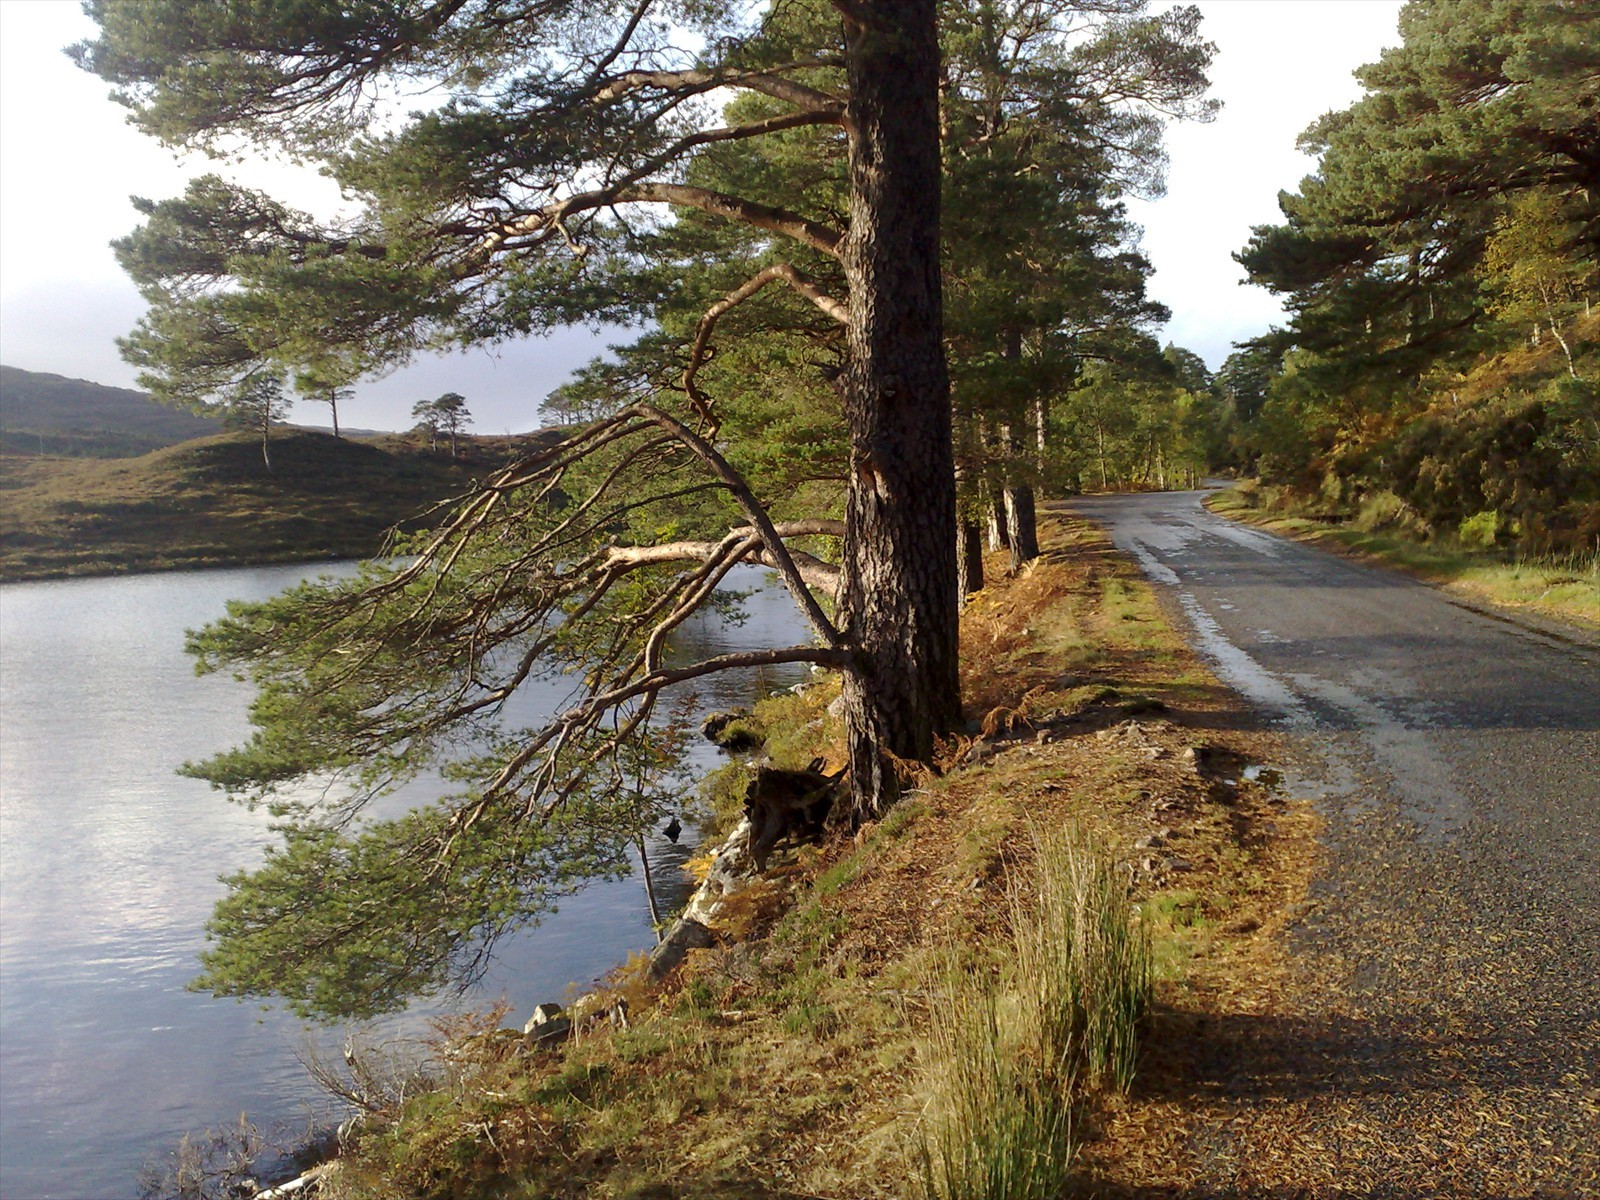 road to shieldaig and torridon at glen shieldaig